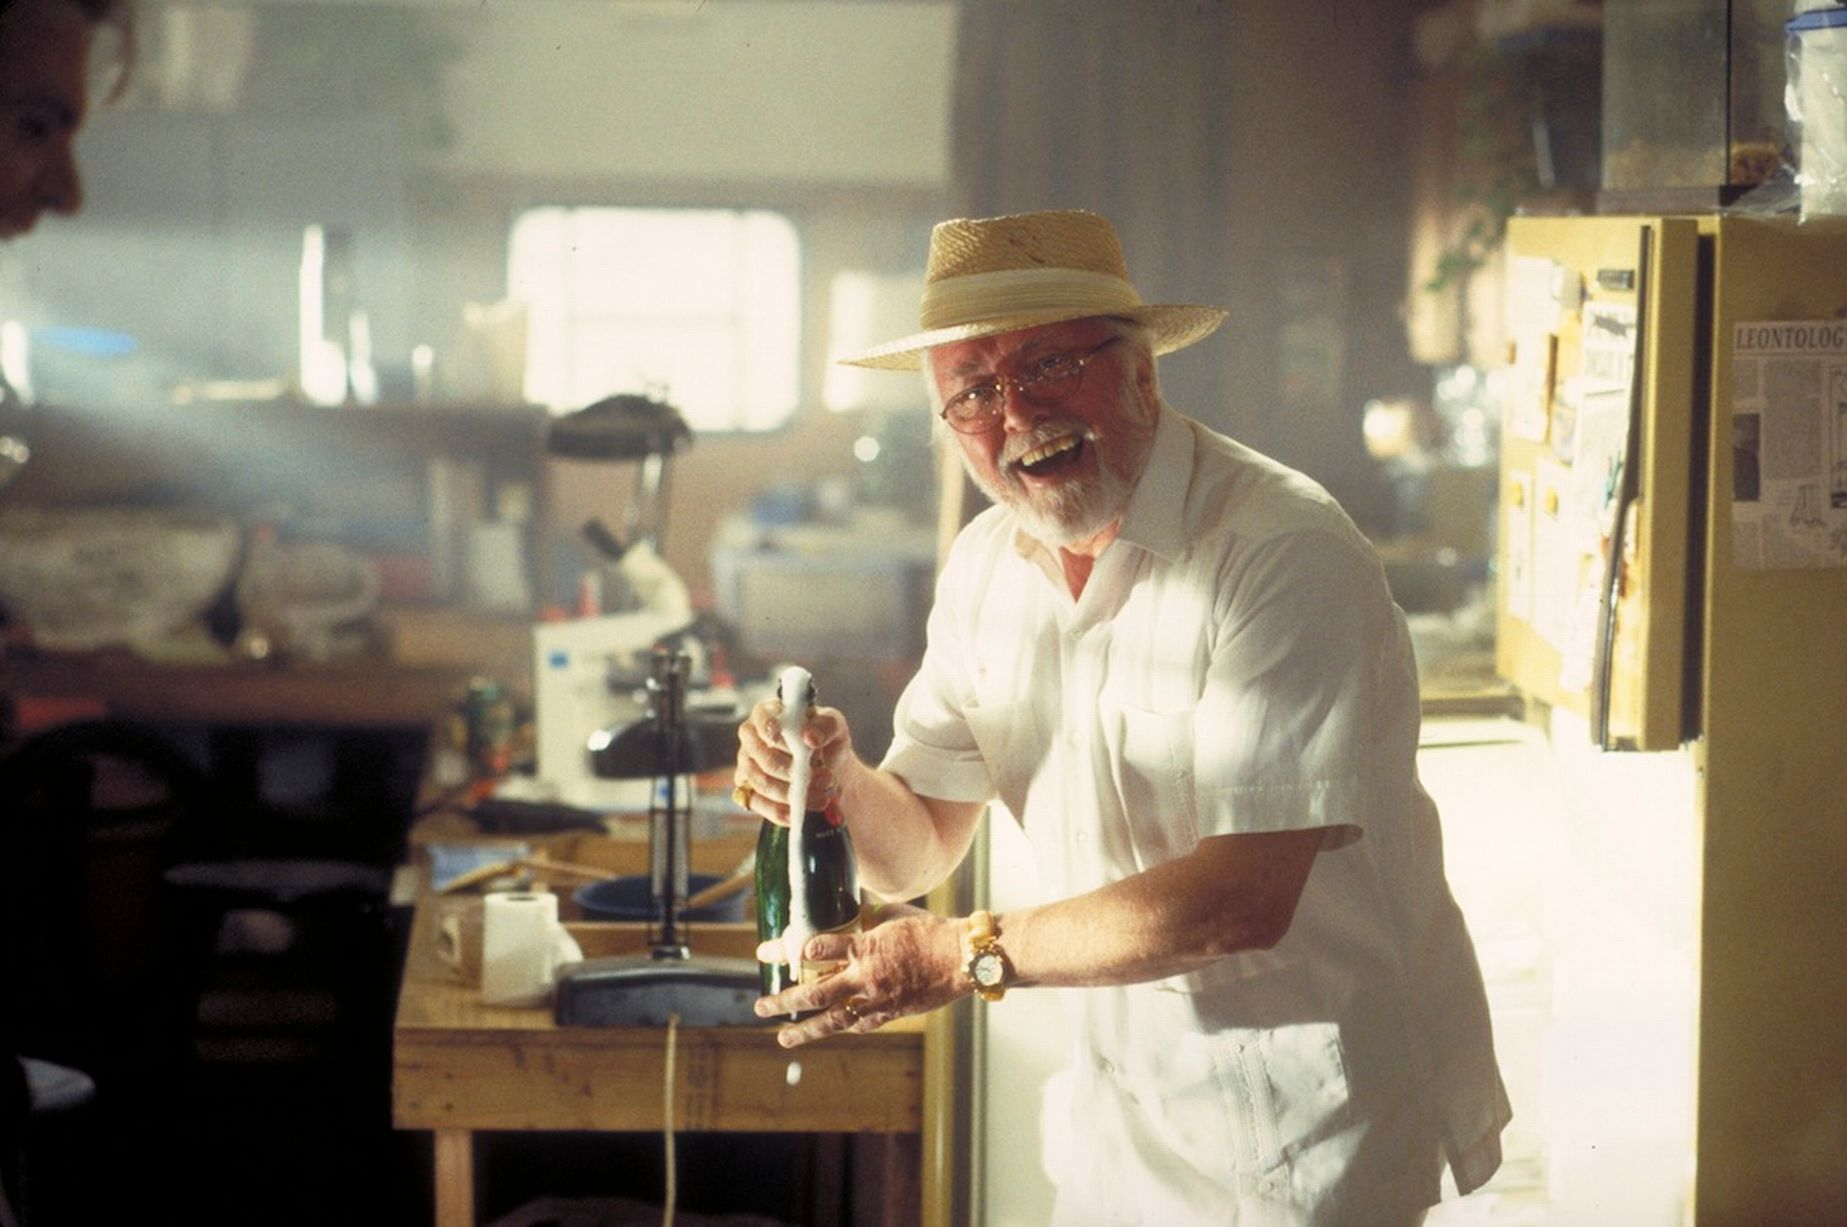 jurassic-park-photo-richard-attenborough-985522.jpg